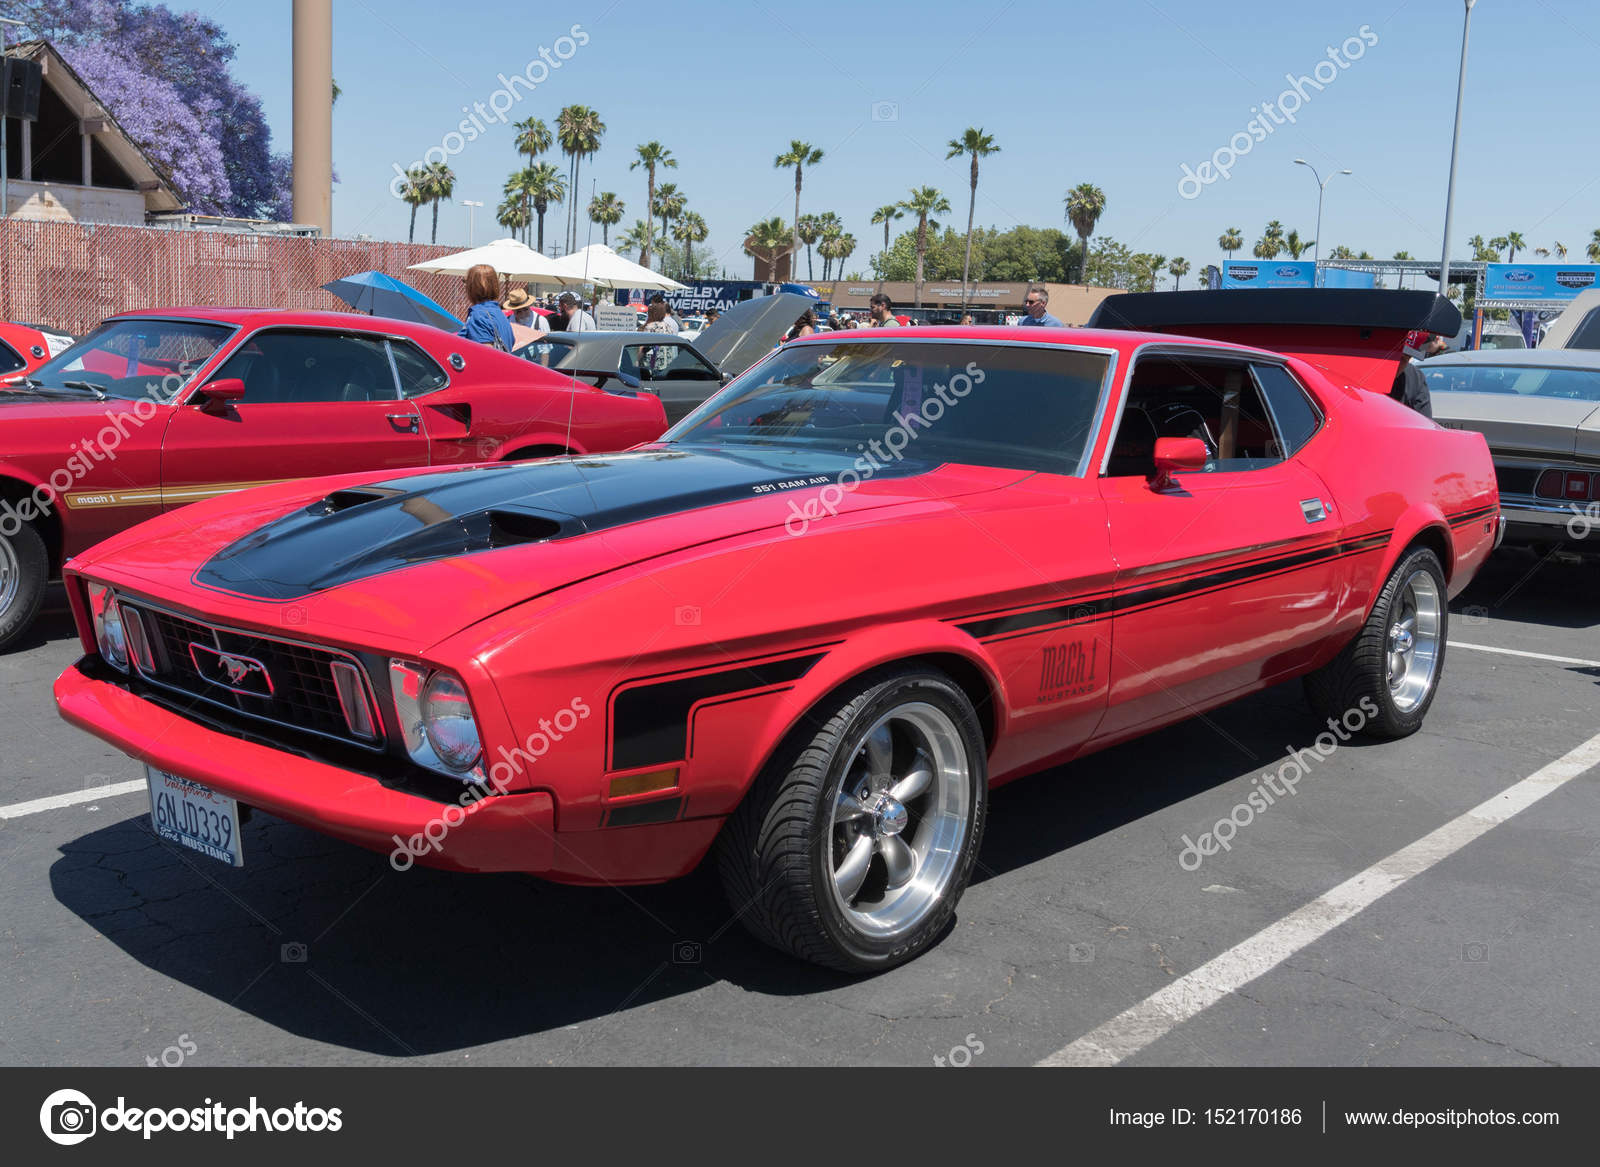 Ford Mustang Mach 1 On Display Stock Editorial Photo